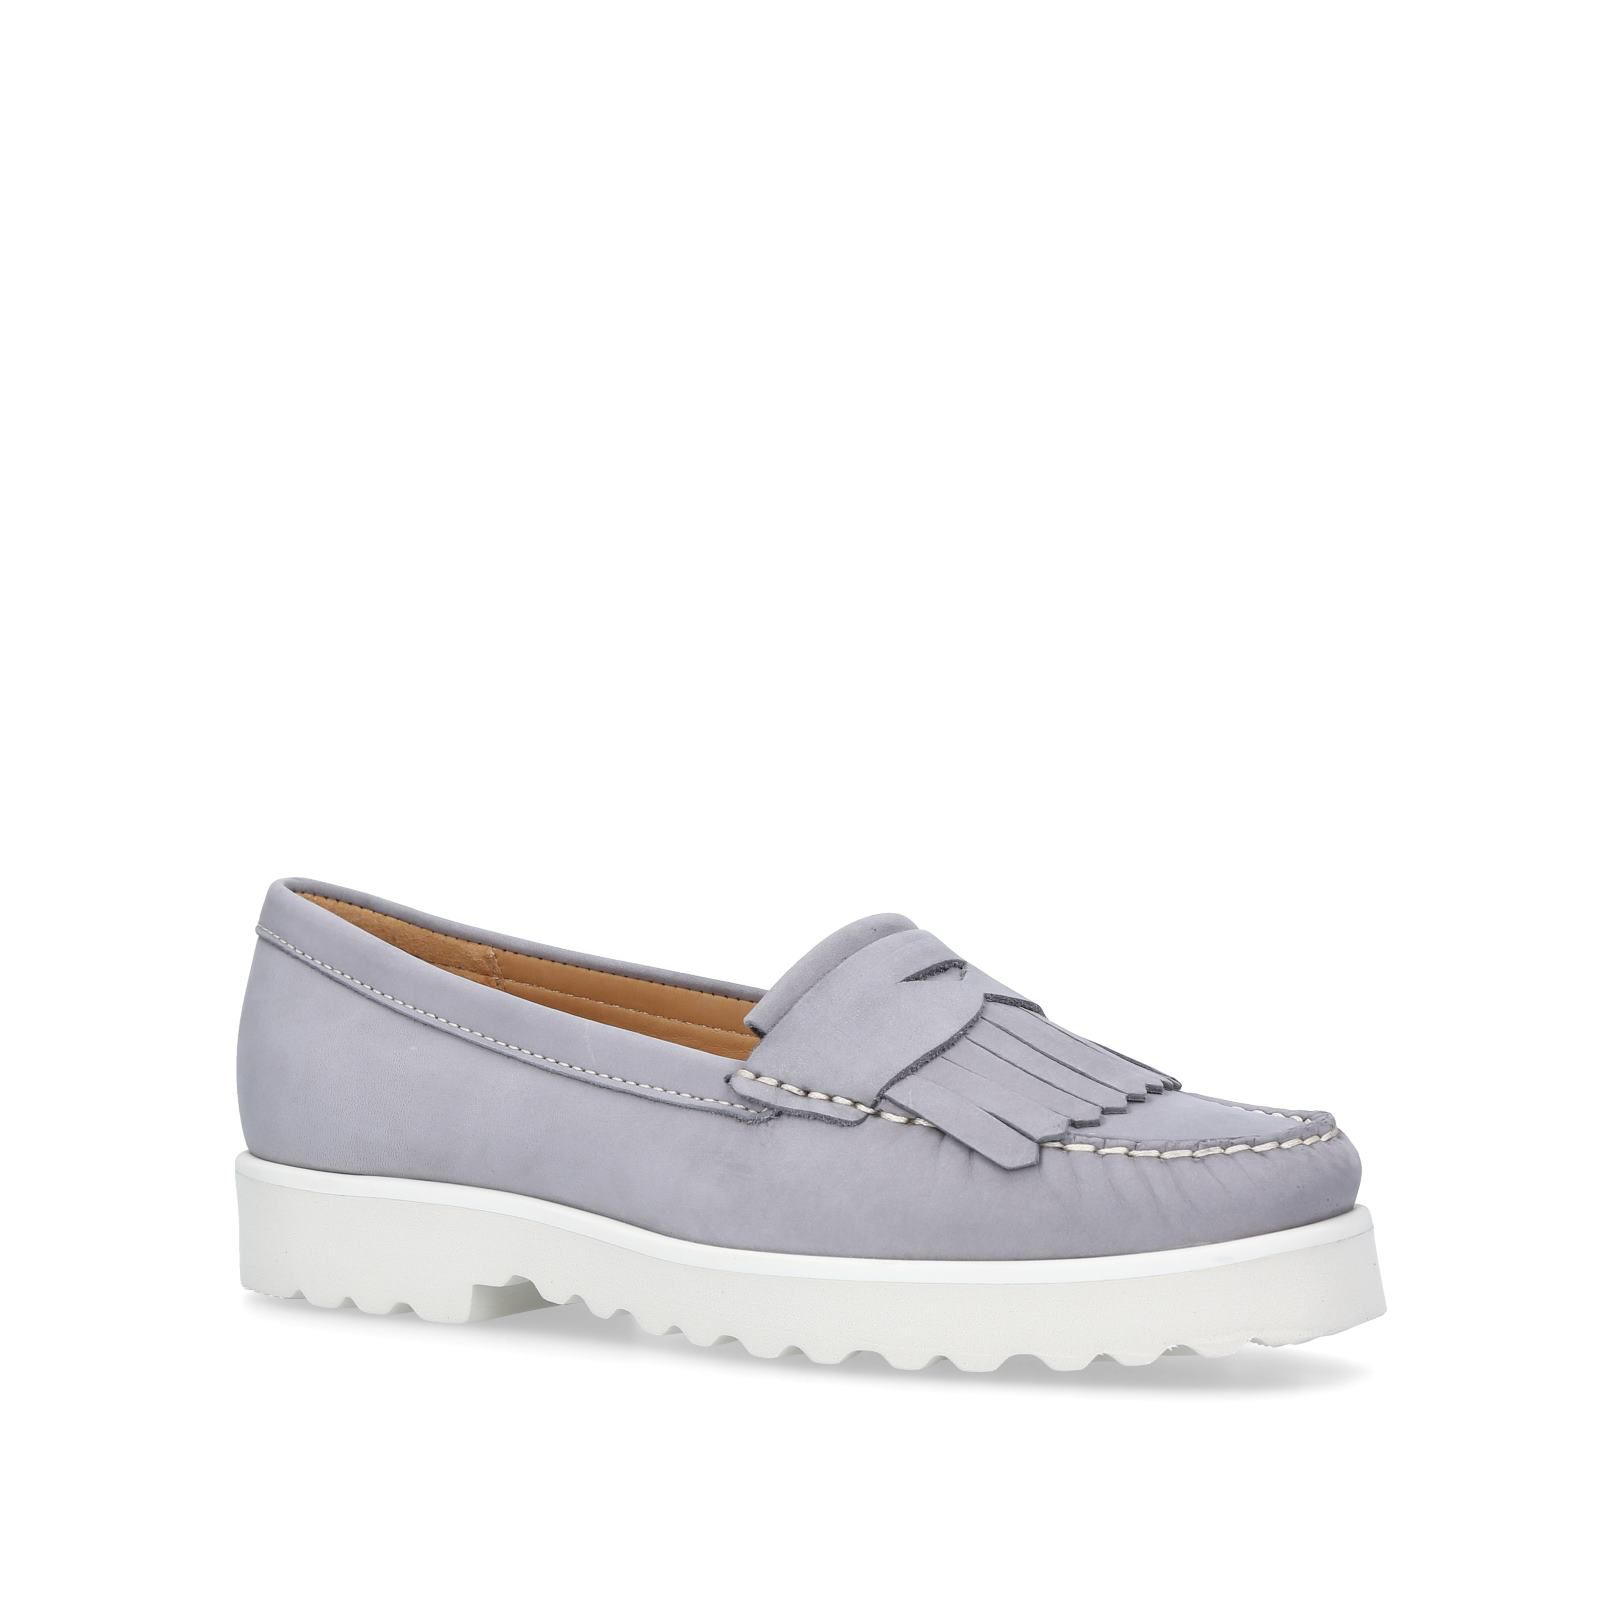 Carvela Comfort Christina Loafers, Grey